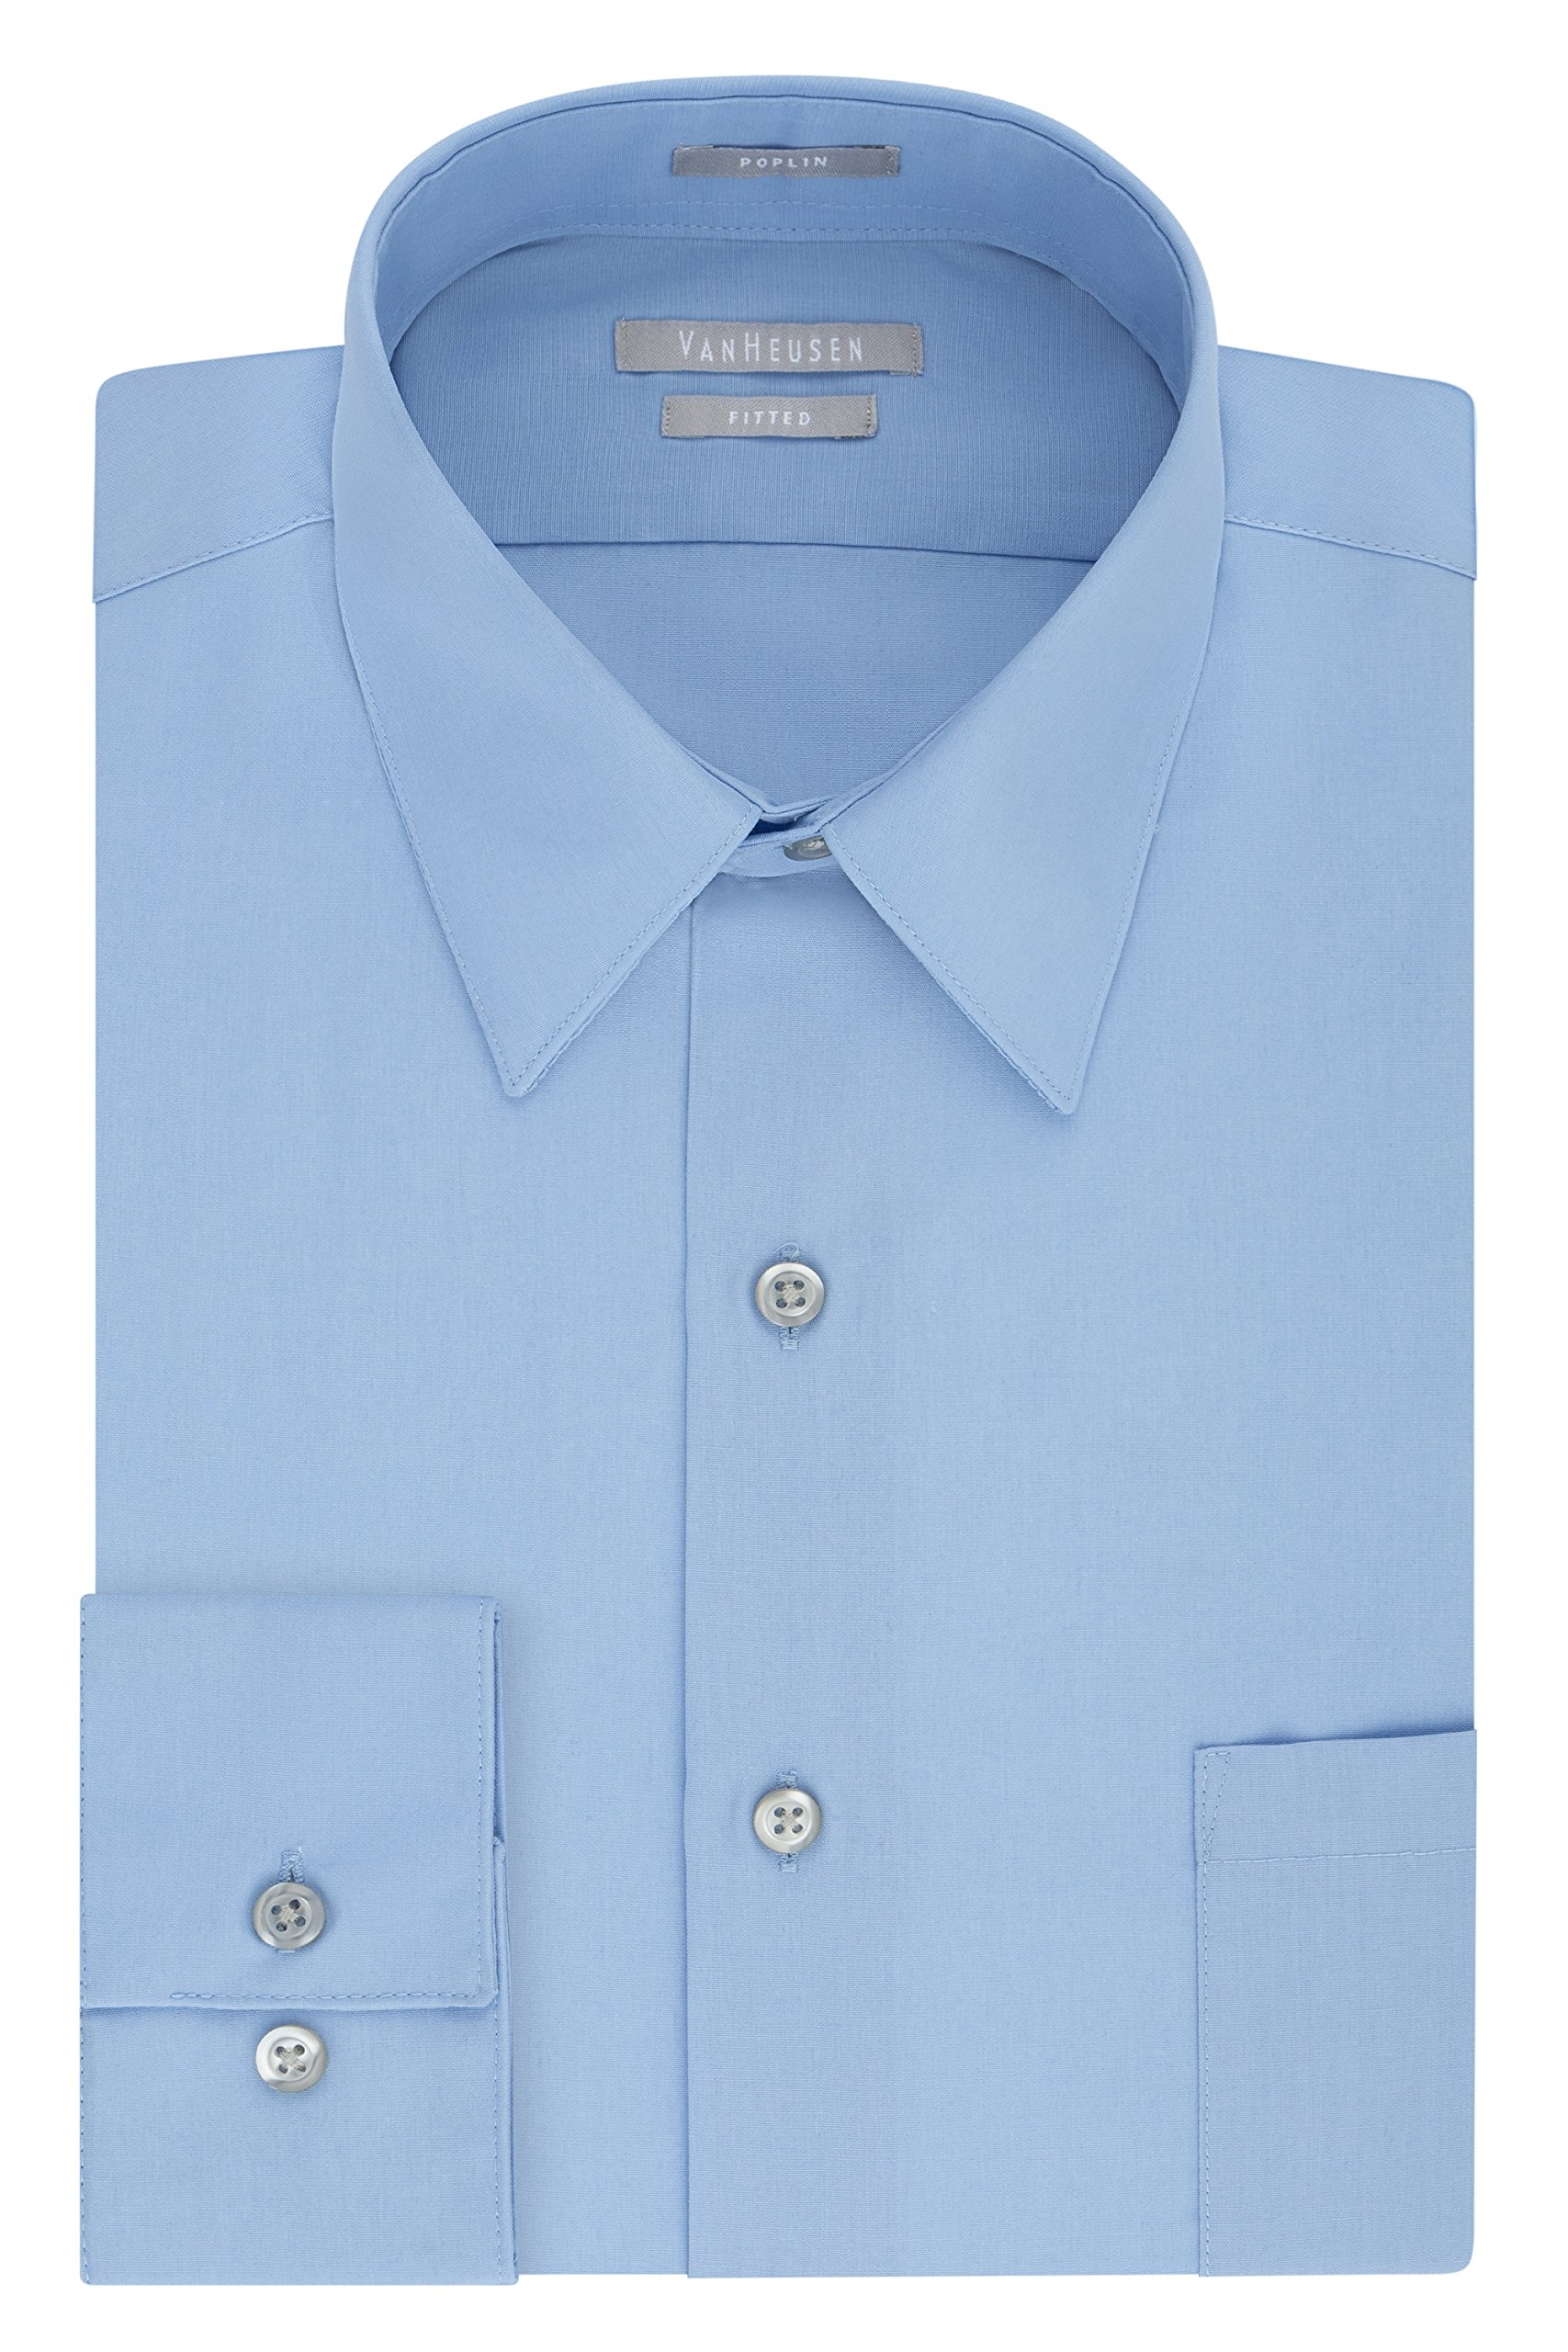 Van Heusen Men's Poplin Fitted Solid Point Collar Dress Shirt, Cameo Blue, 17'' Neck 34''-35'' Sleeve